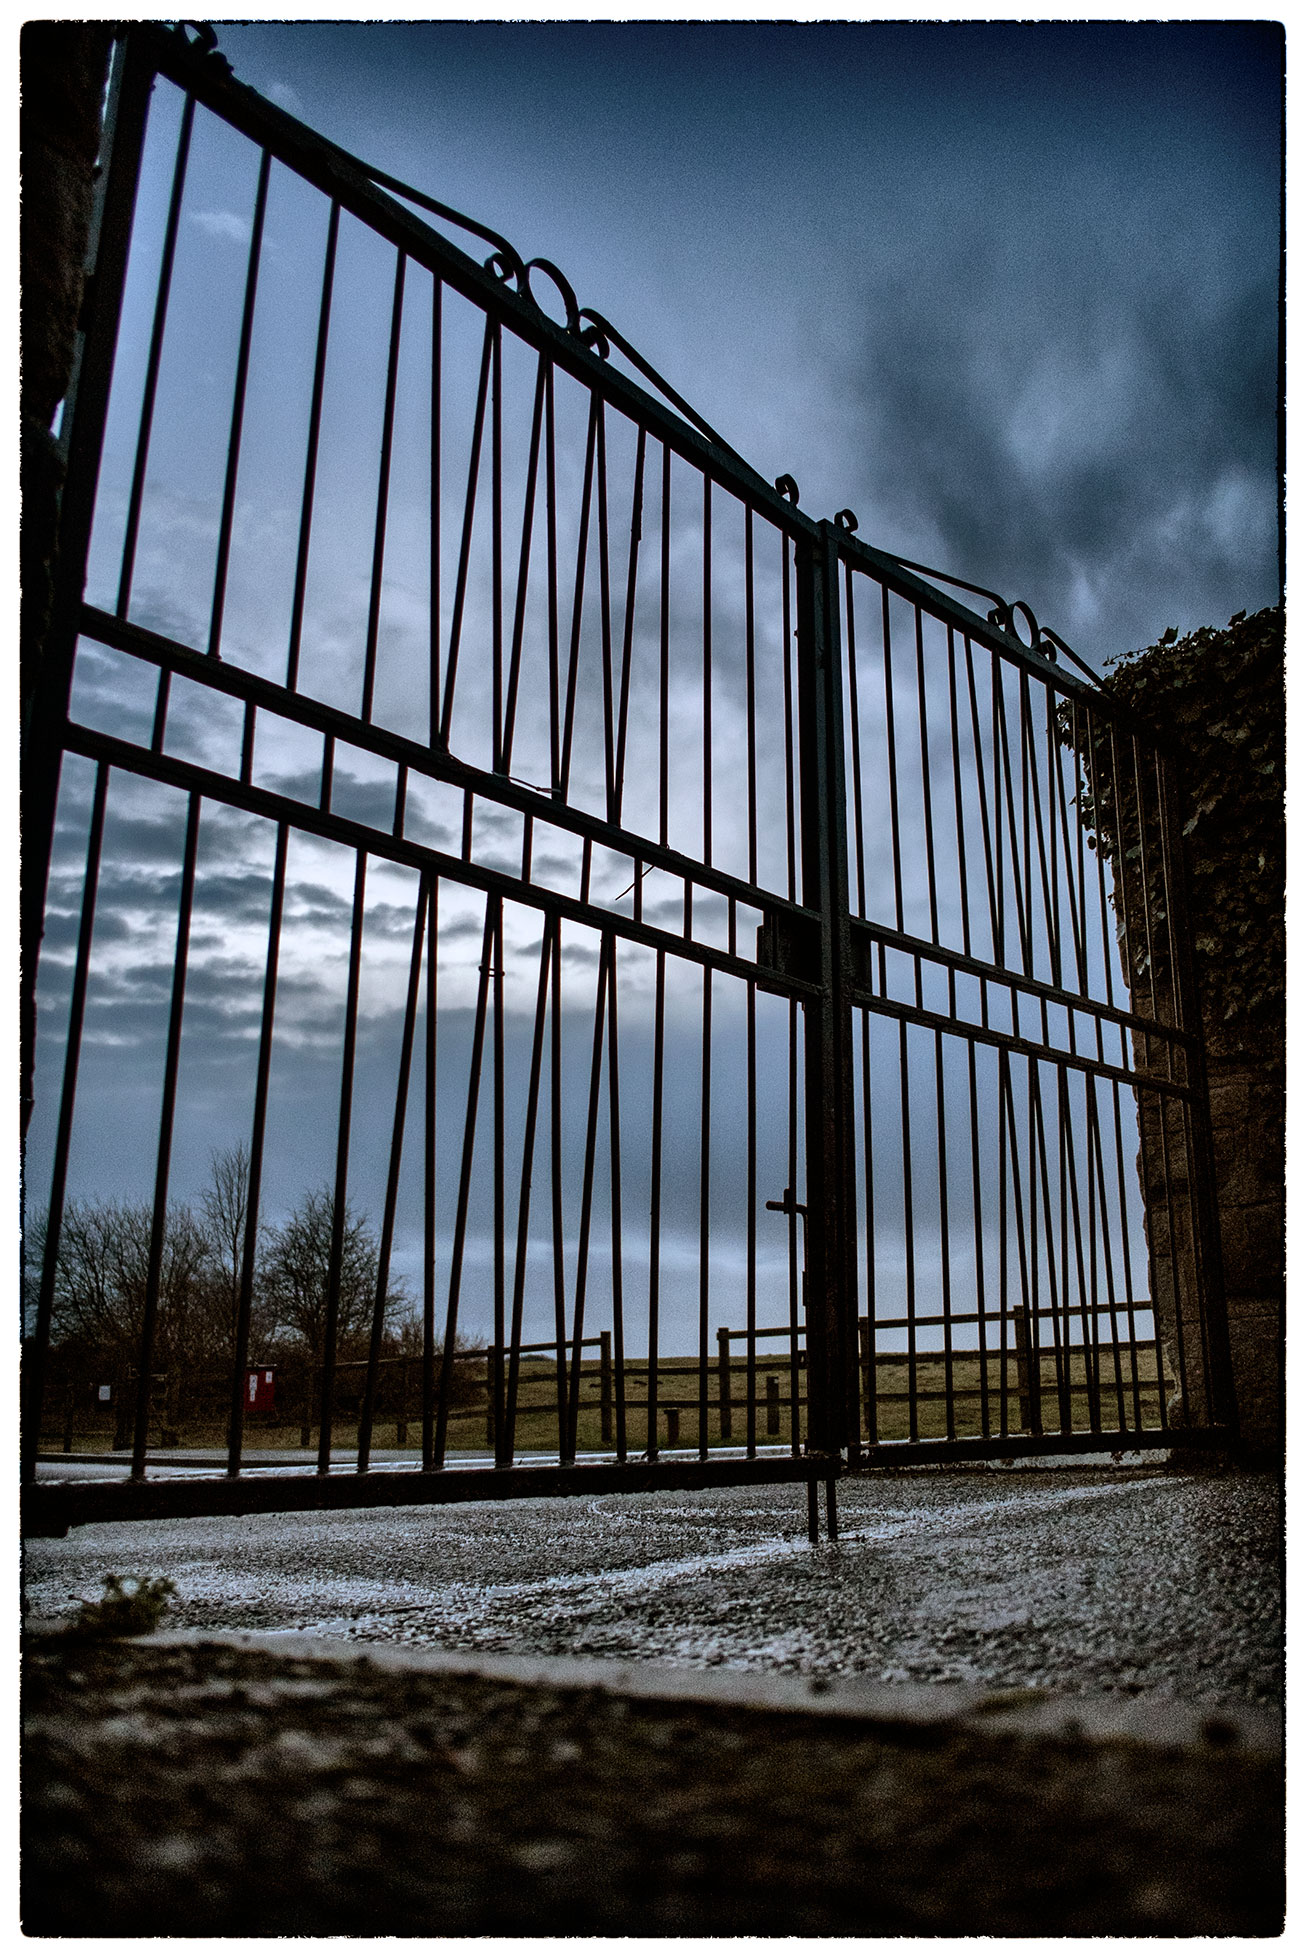 Worm's eye view of the park gates at Alyn Waters on a rainy morning dog walk.